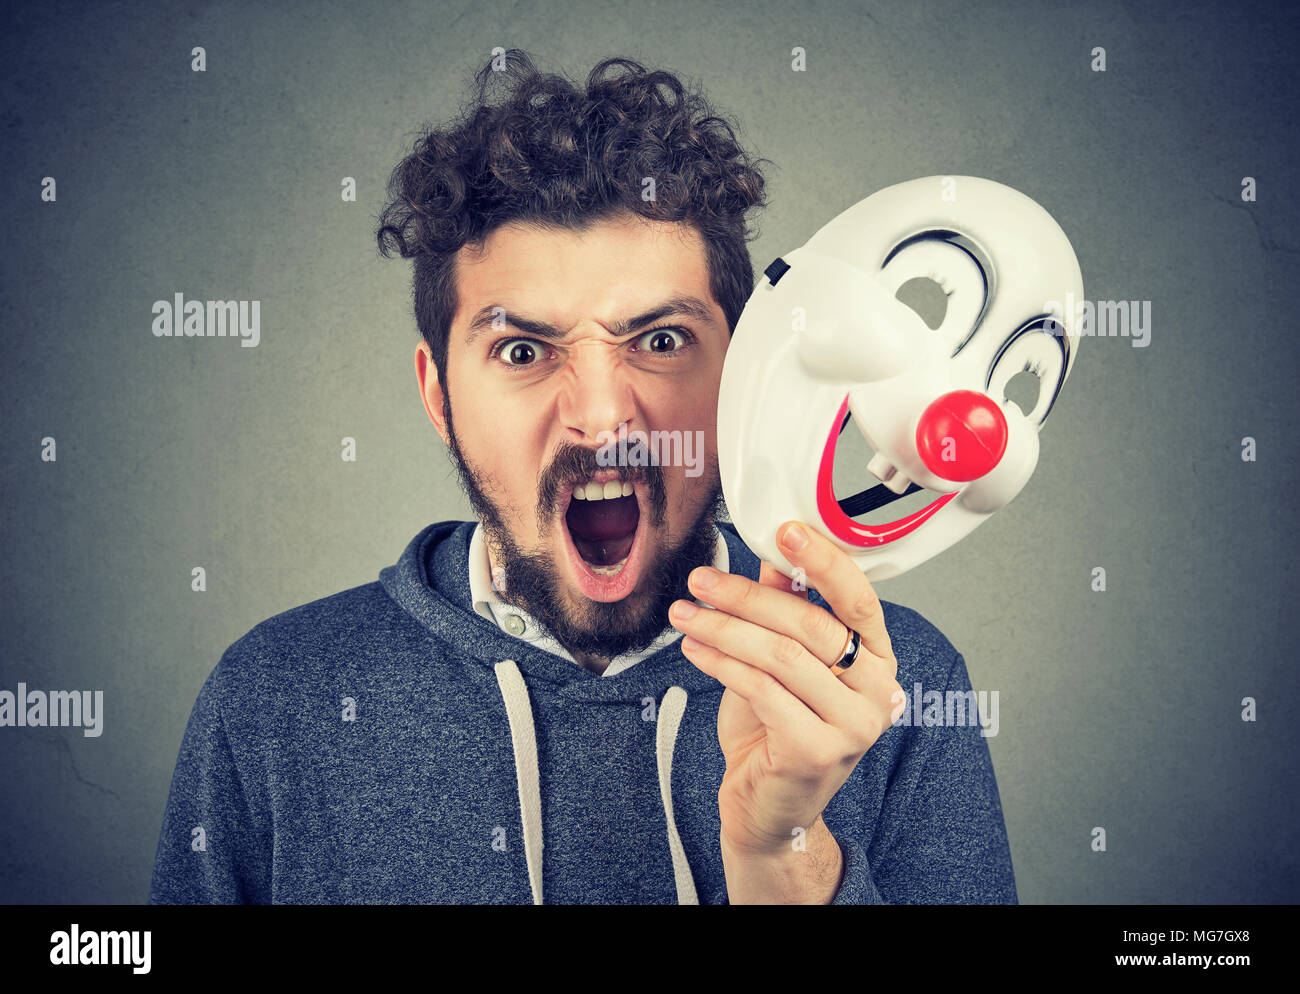 Portrait young upset angry screaming man holding a clown mask isolated on gray wall background. Human emotions feelings - Stock Image